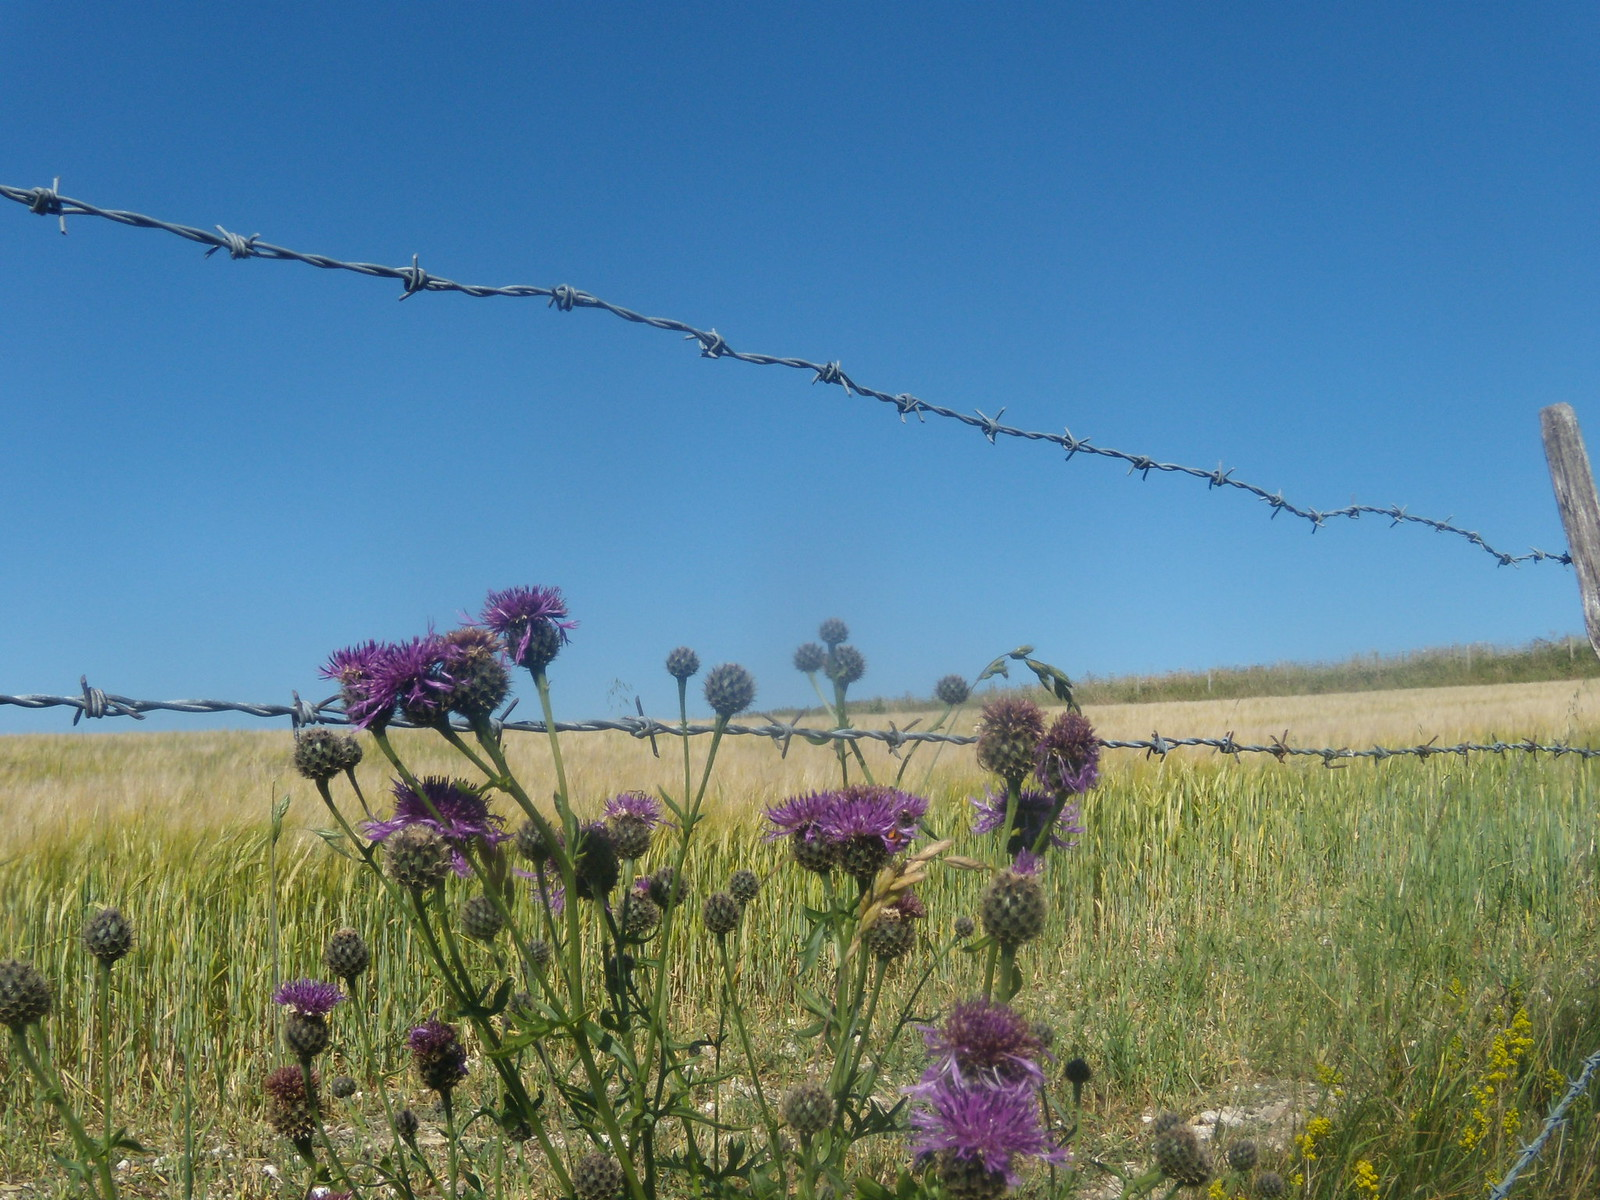 Knapweed Berwick to Birling Gap